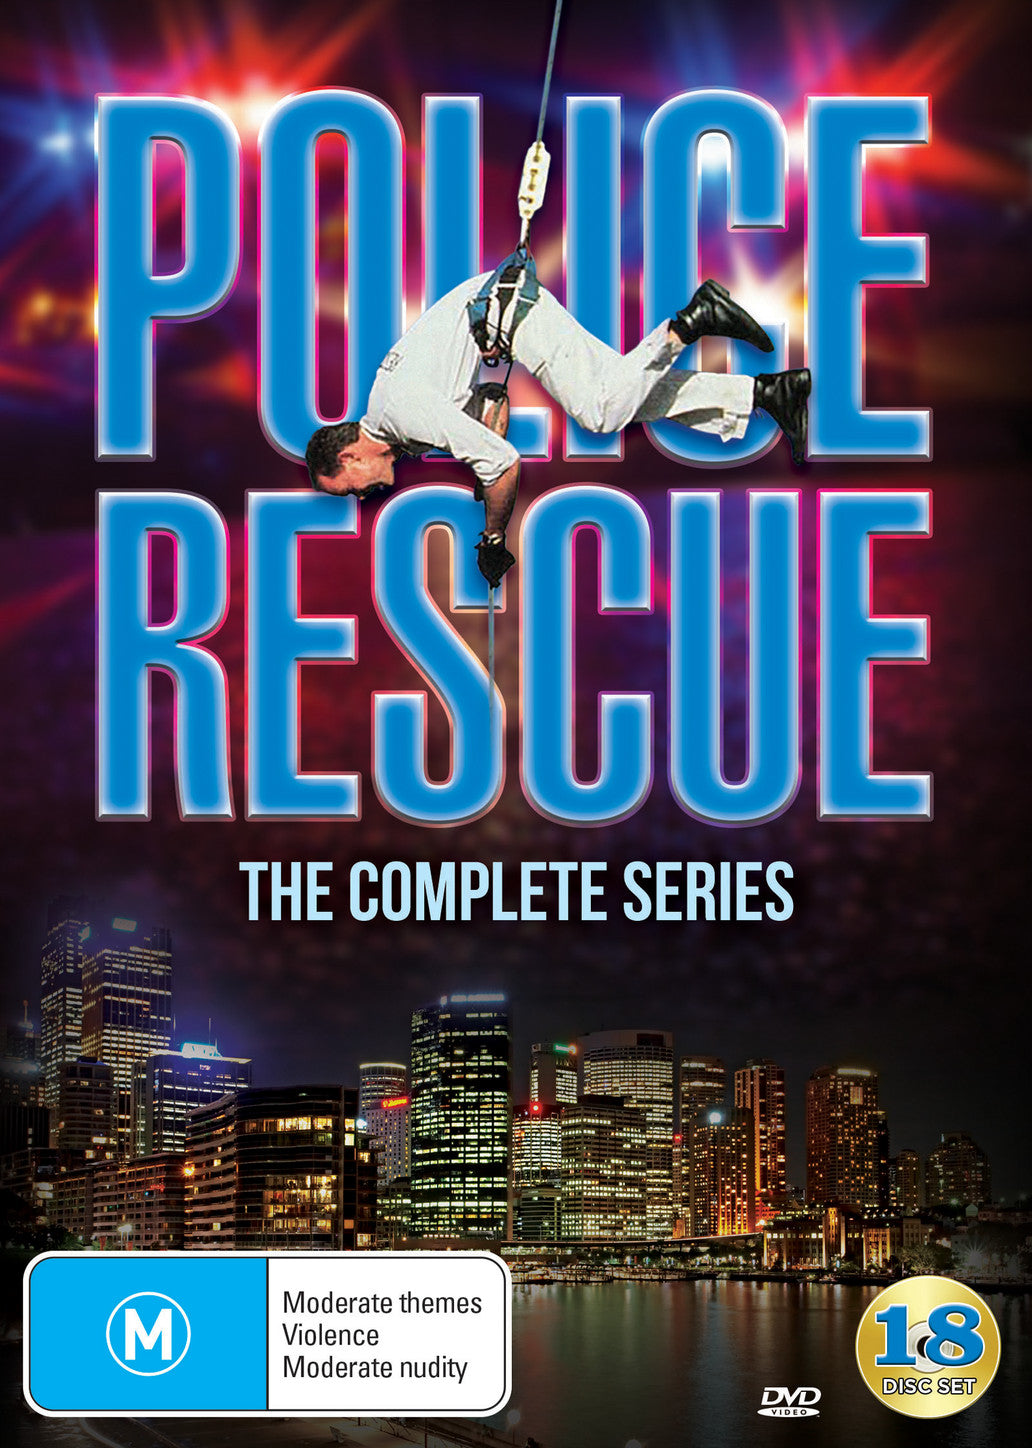 Police Rescue - The Complete Series DVD